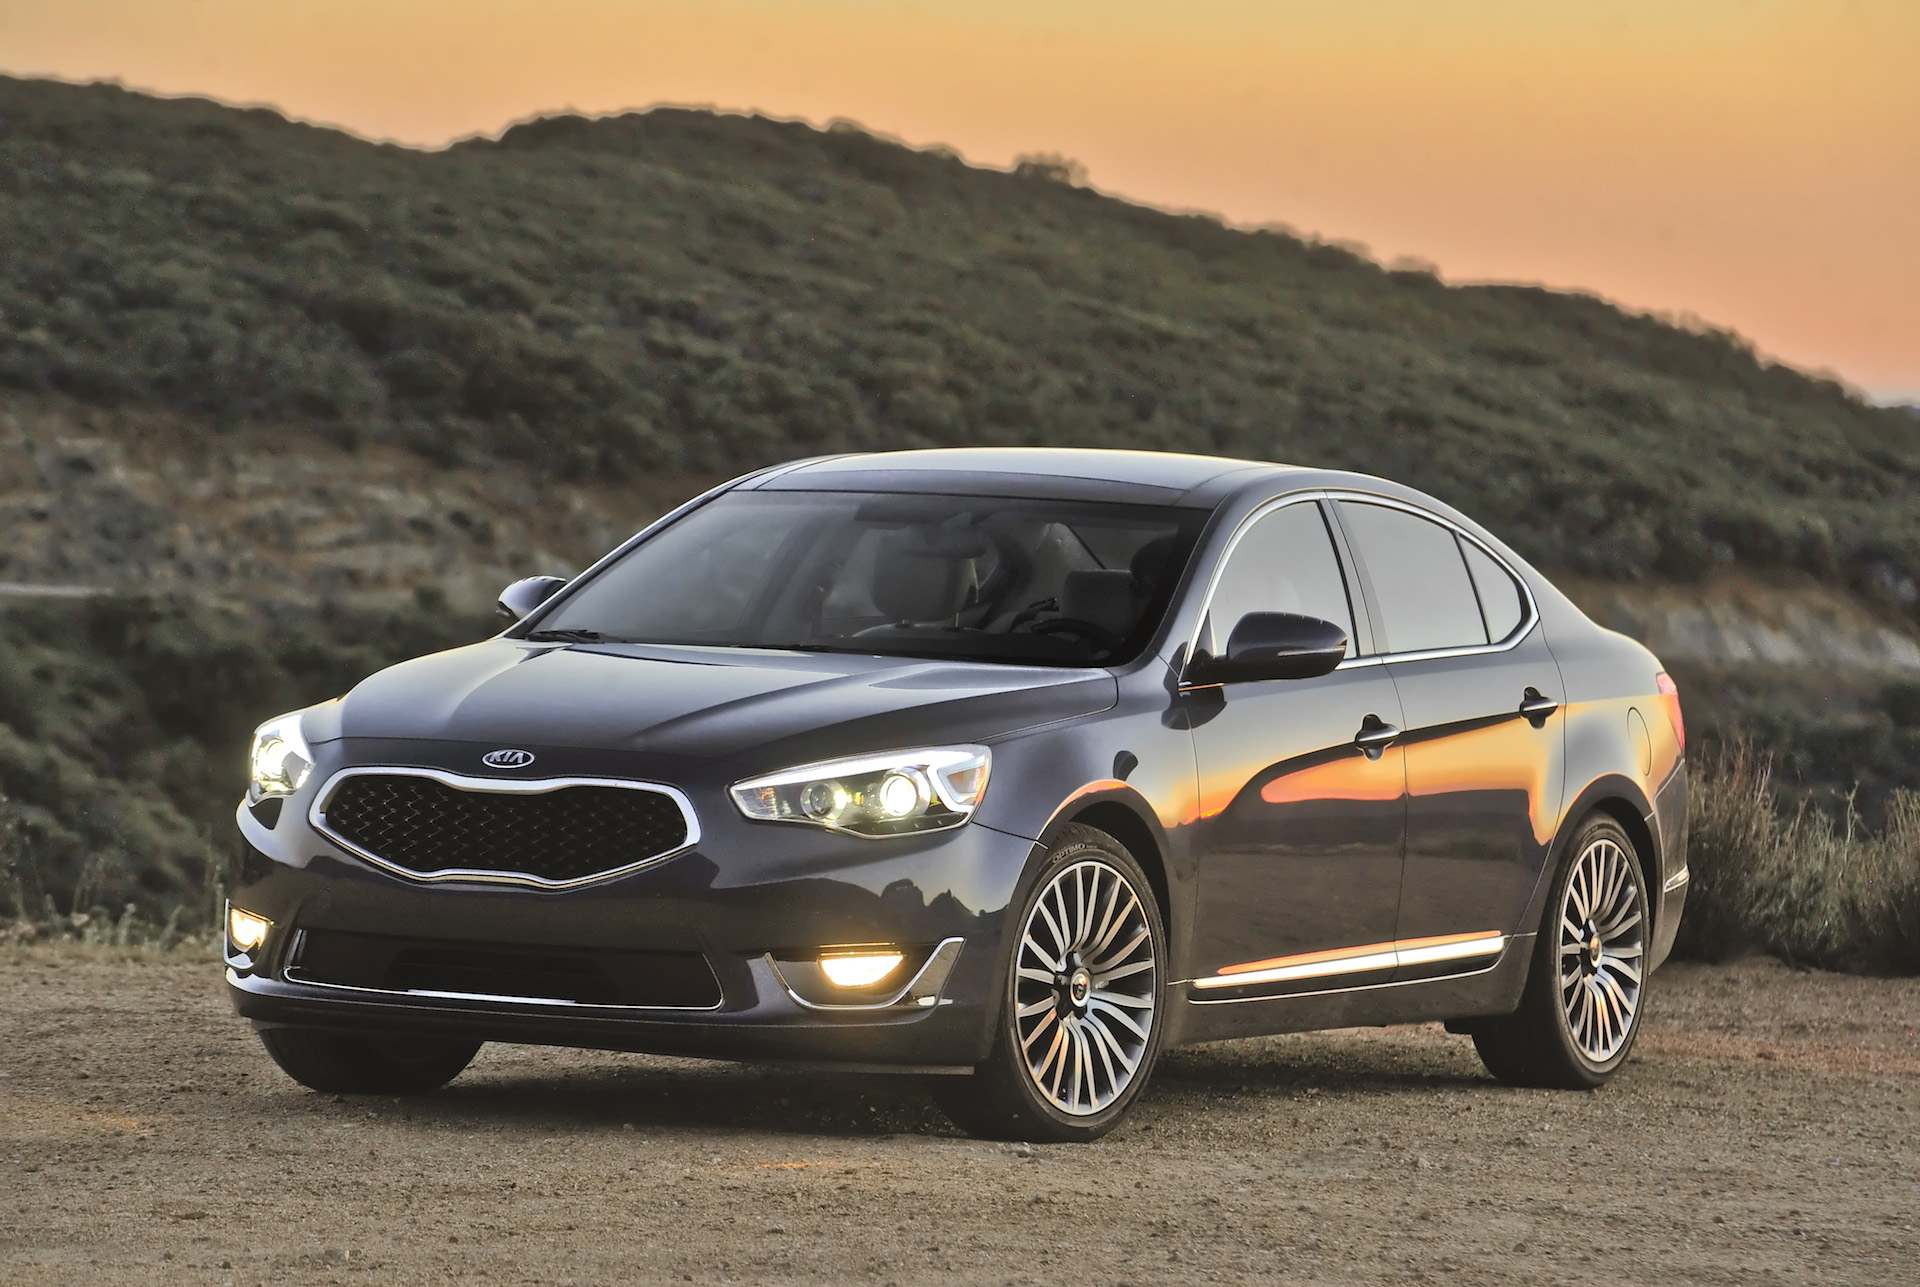 2015 Kia Cadenza Safety Review and Crash Test Ratings - The Car Connection